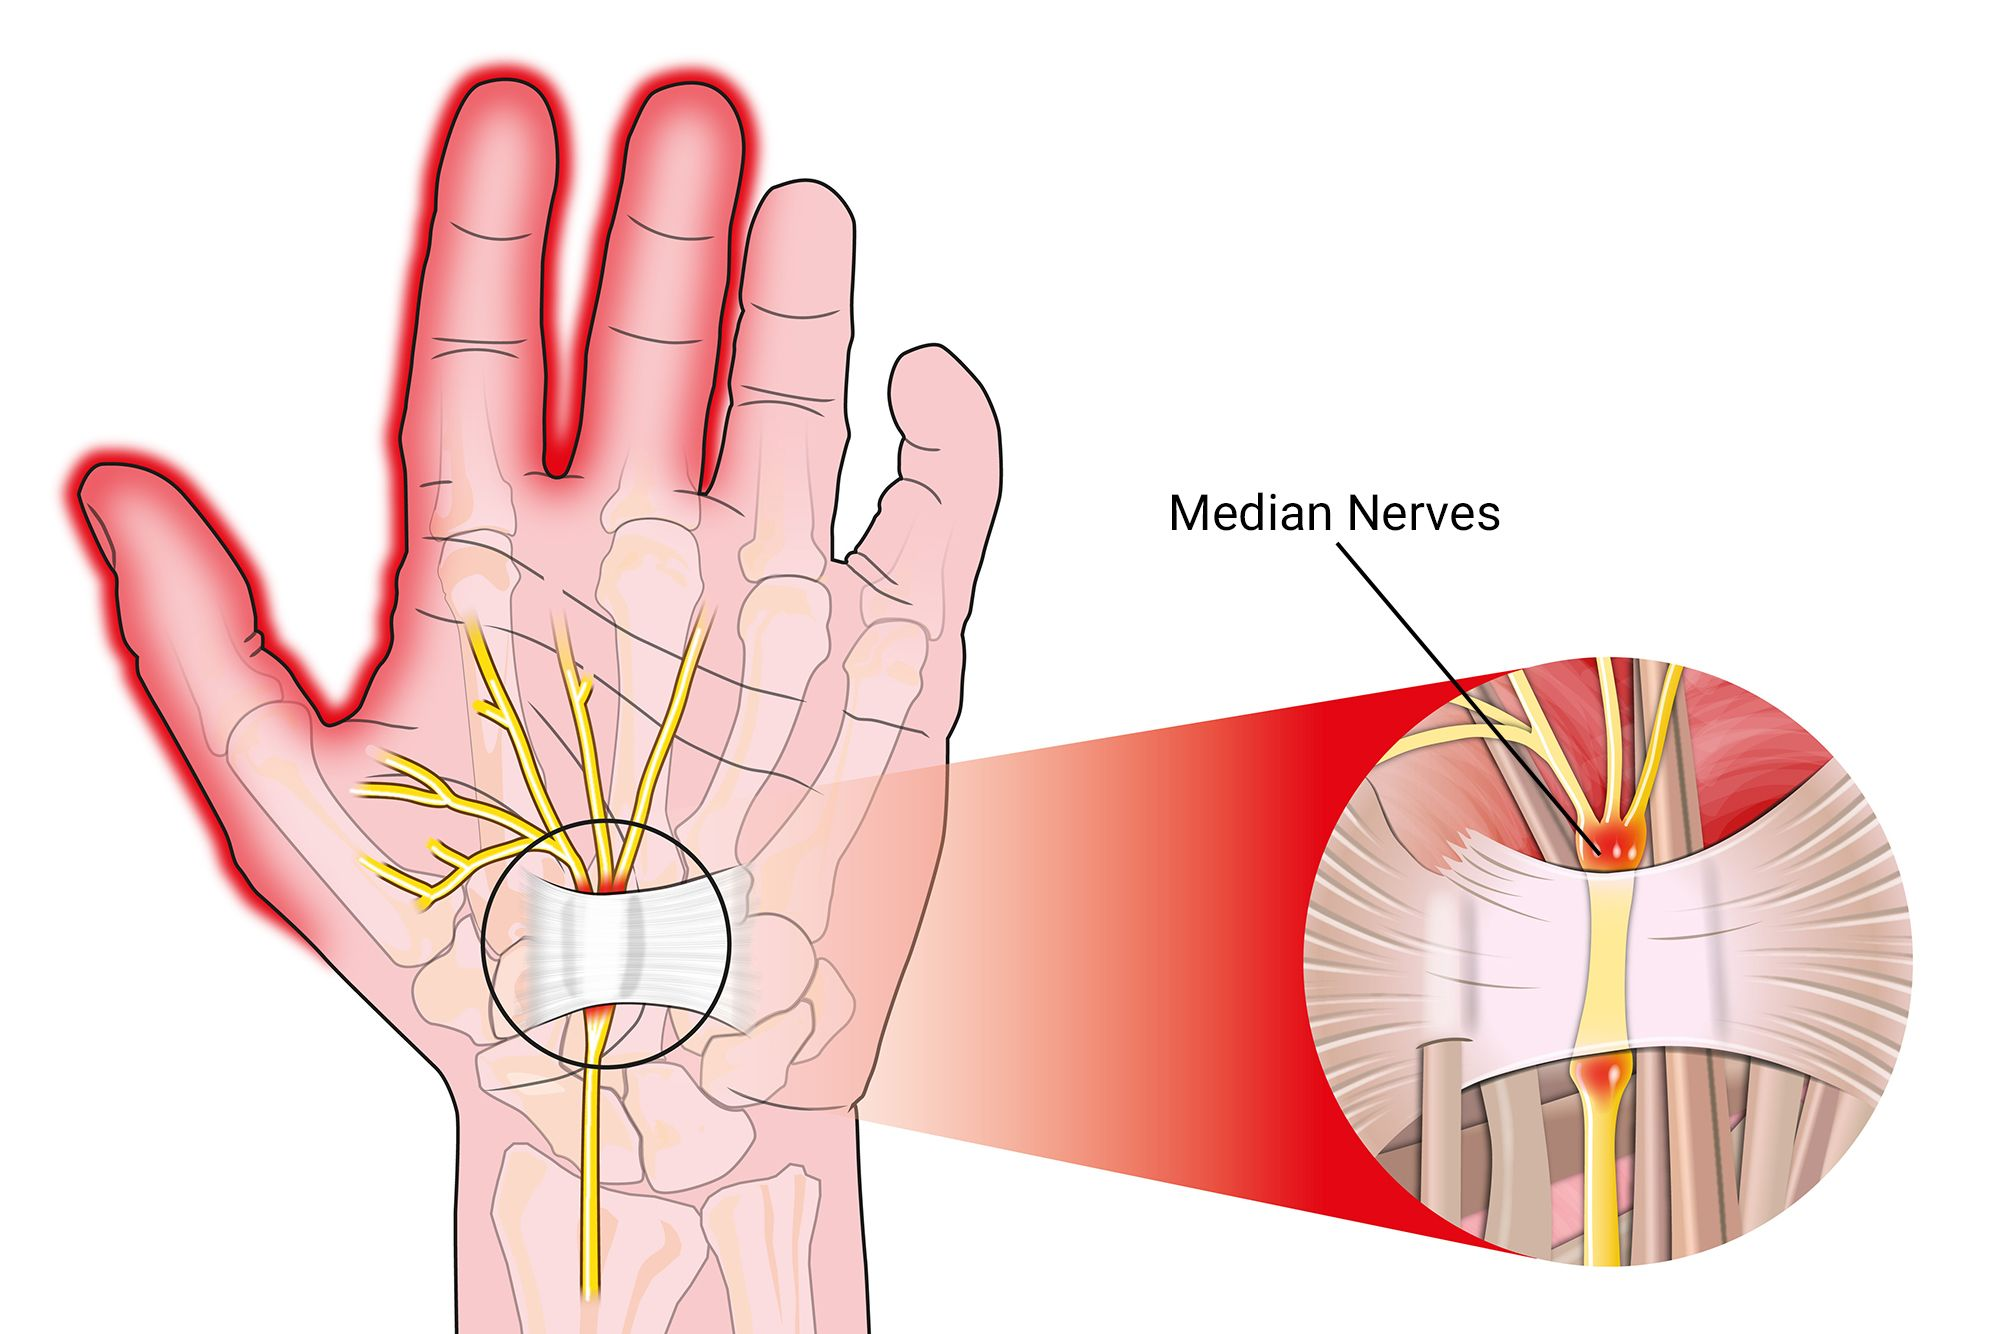 illustration of a hand affected by carpal tunnel syndrome